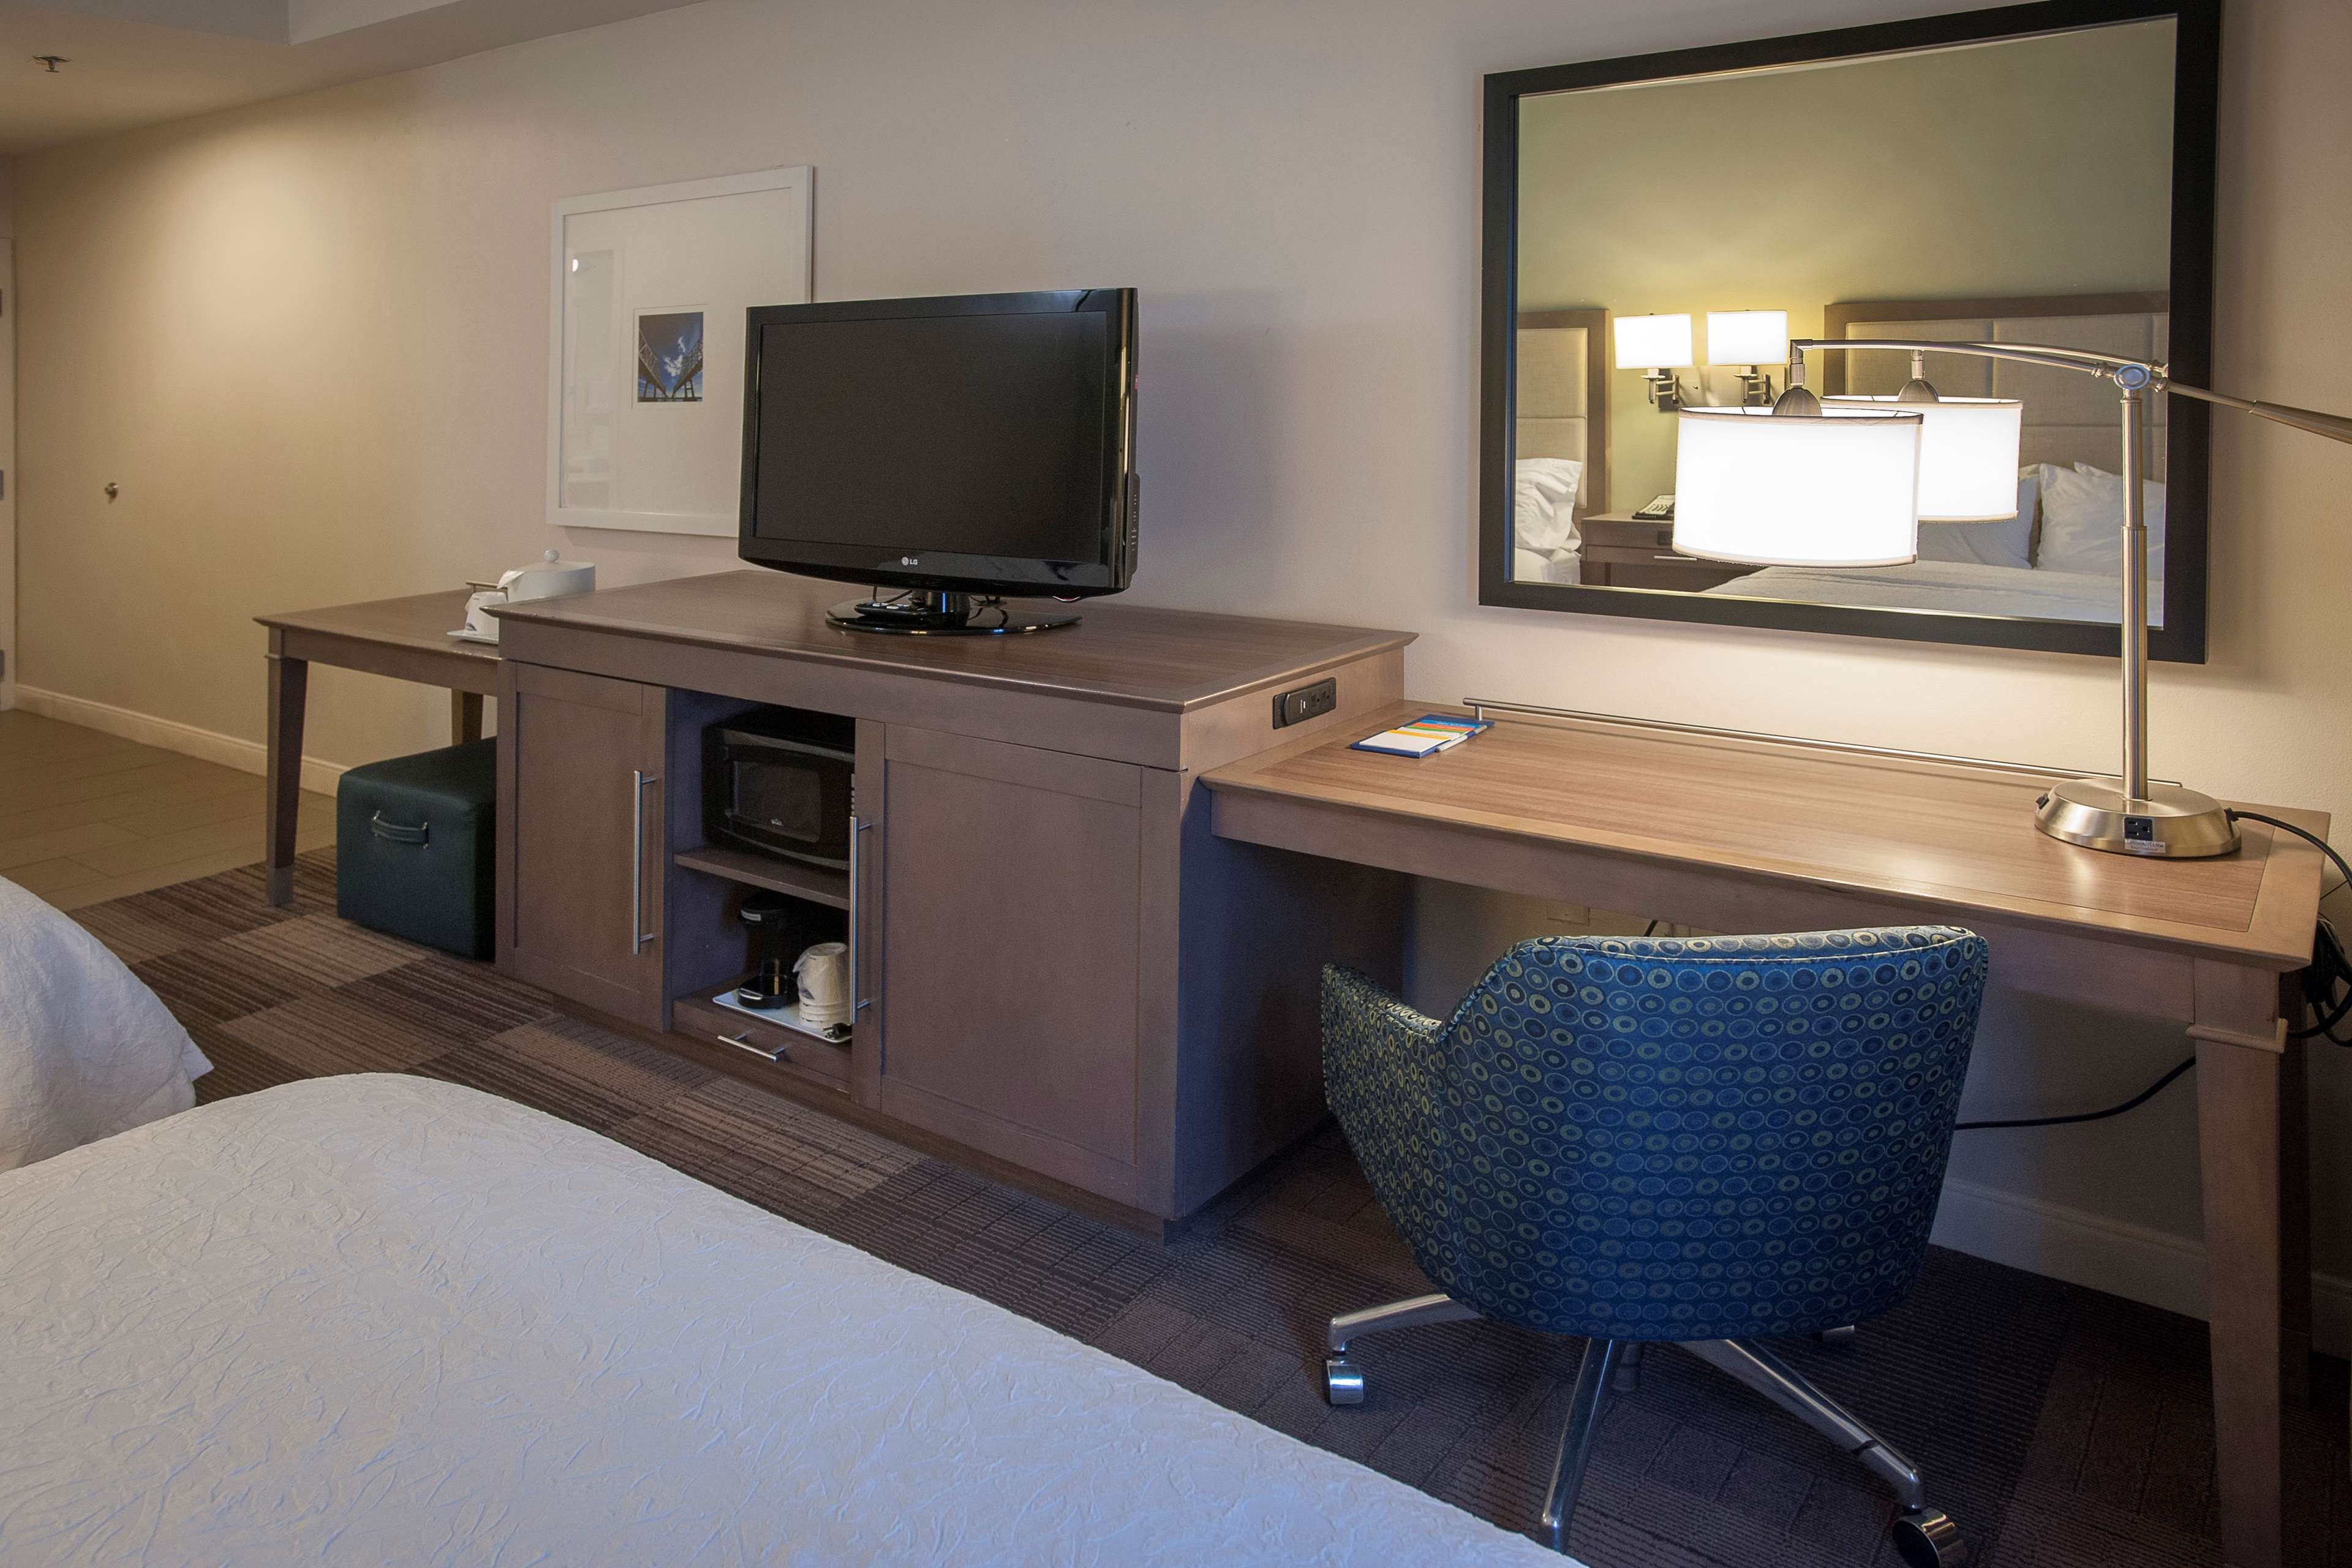 Hampton Inn & Suites New Orleans-Elmwood/Clearview Parkway Area image 26